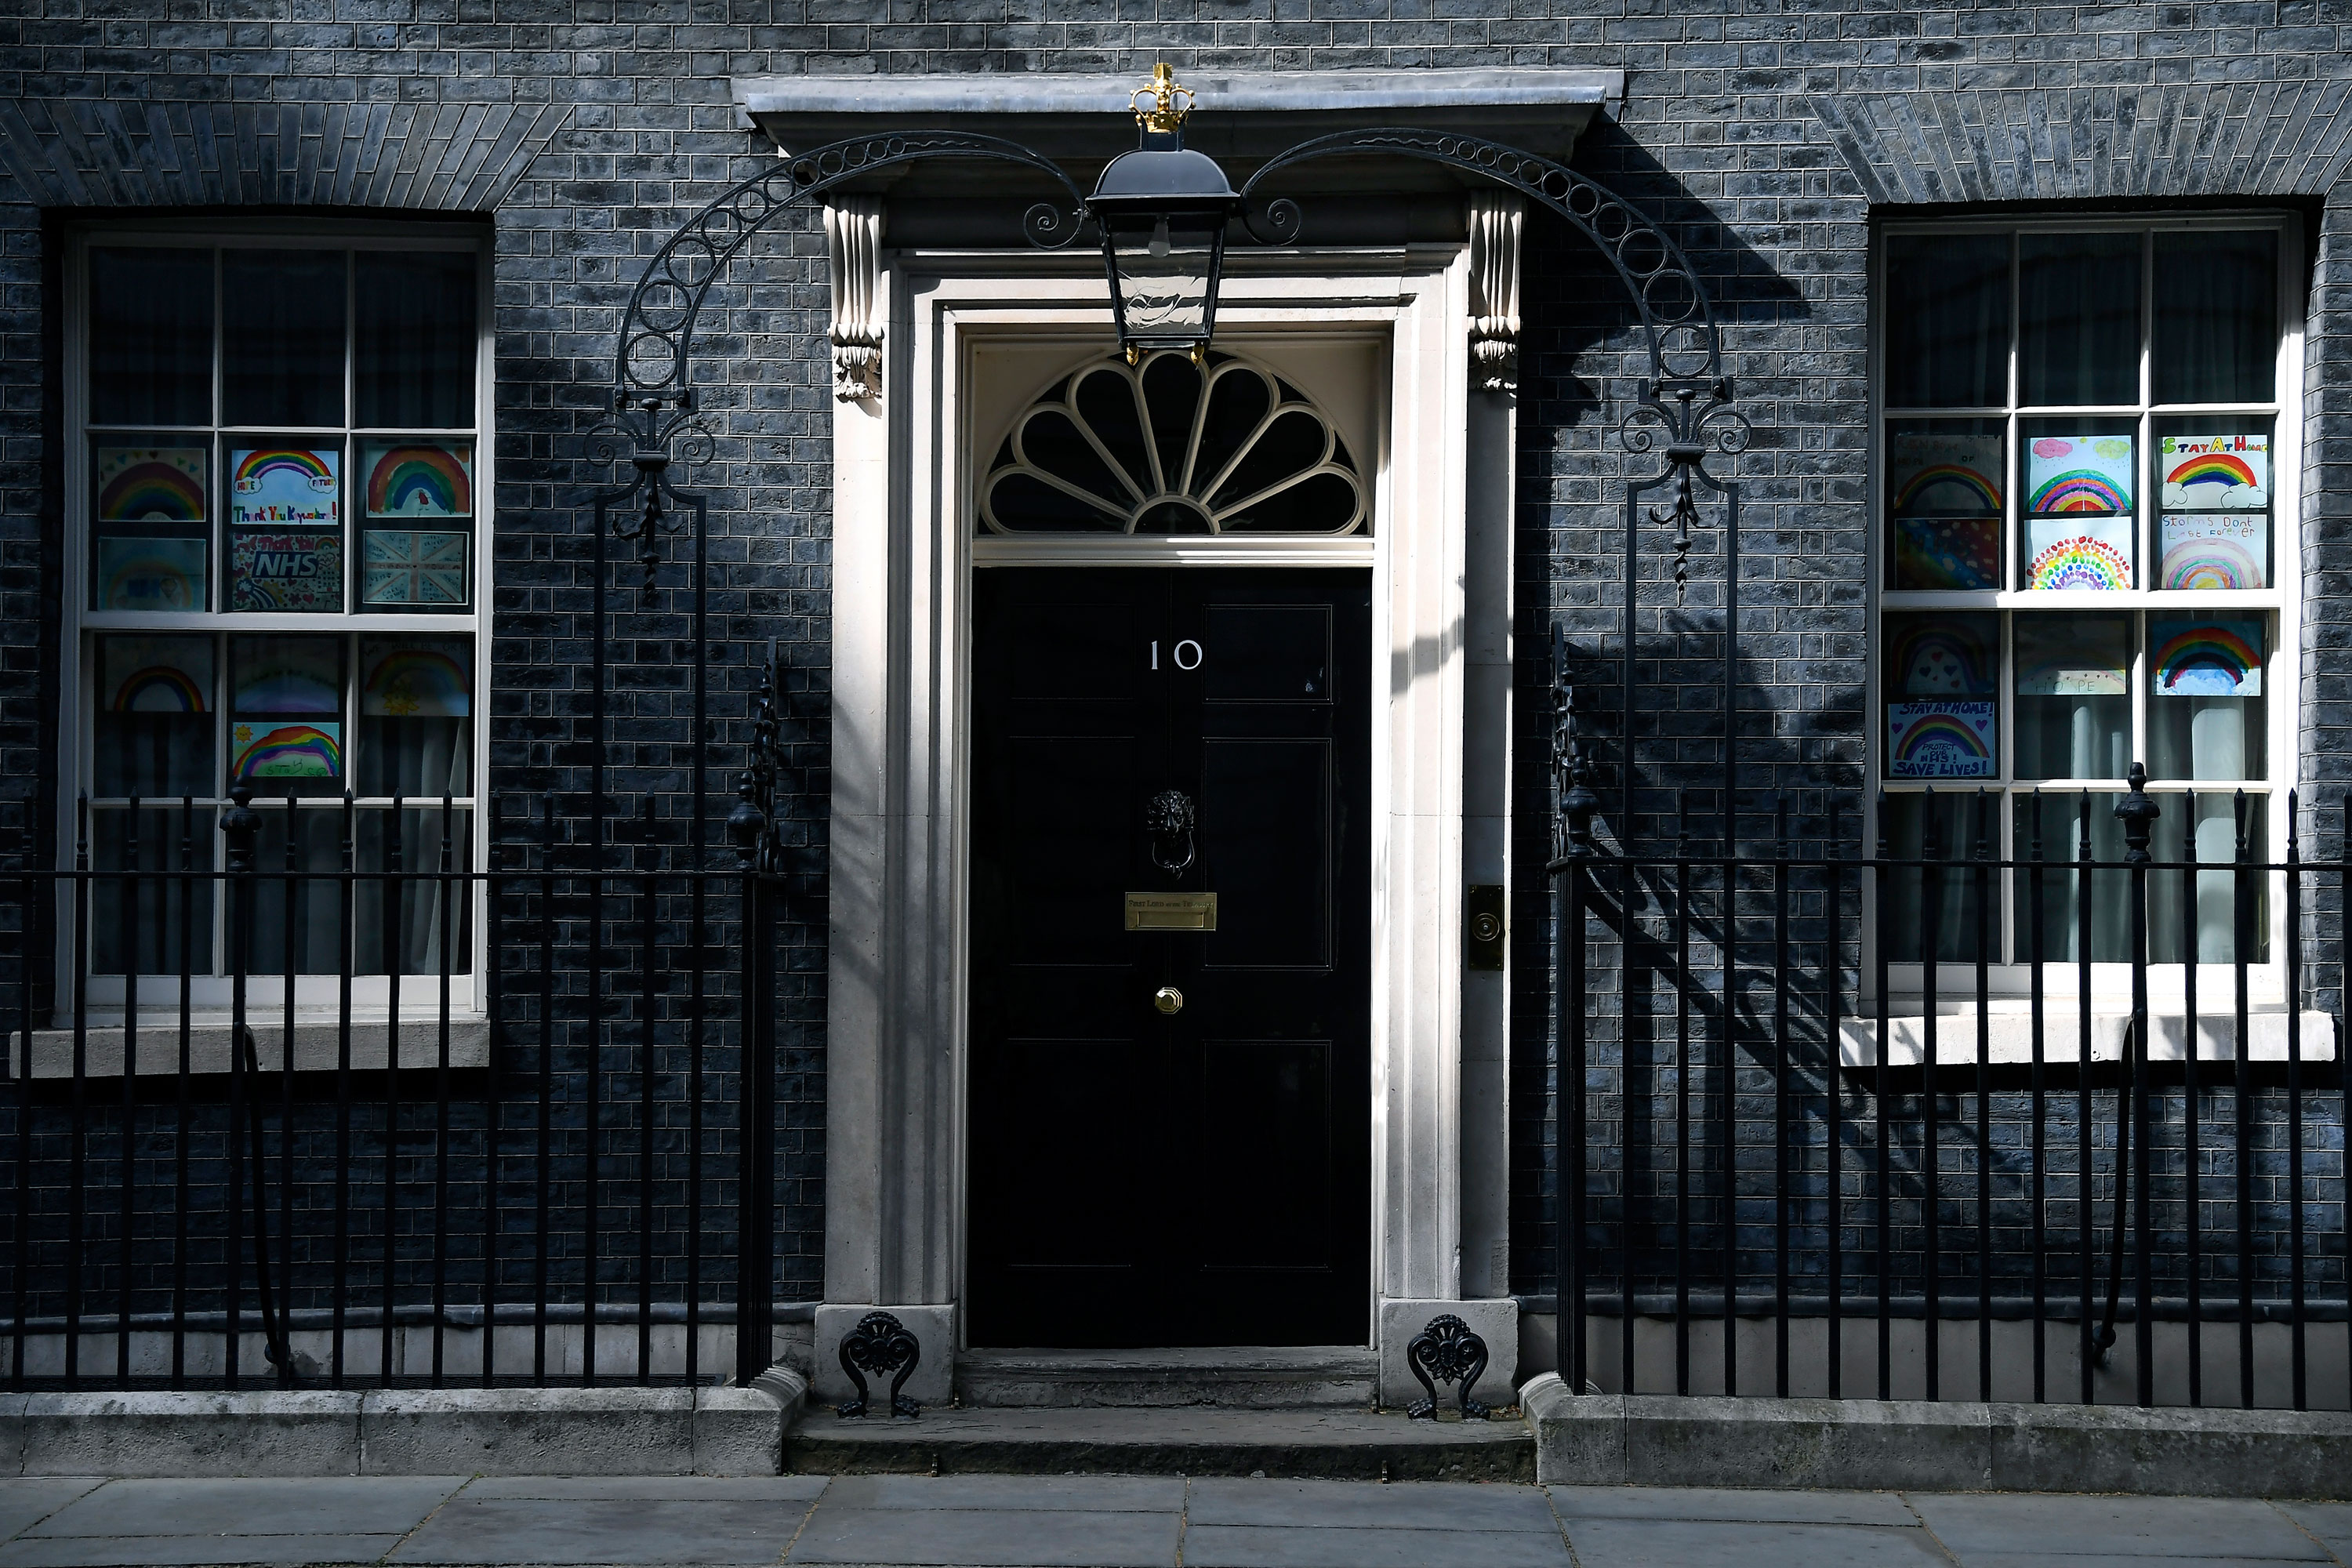 British Prime Minister Boris Johnson has returned to 10 Downing Street and will be back at work on Monday.